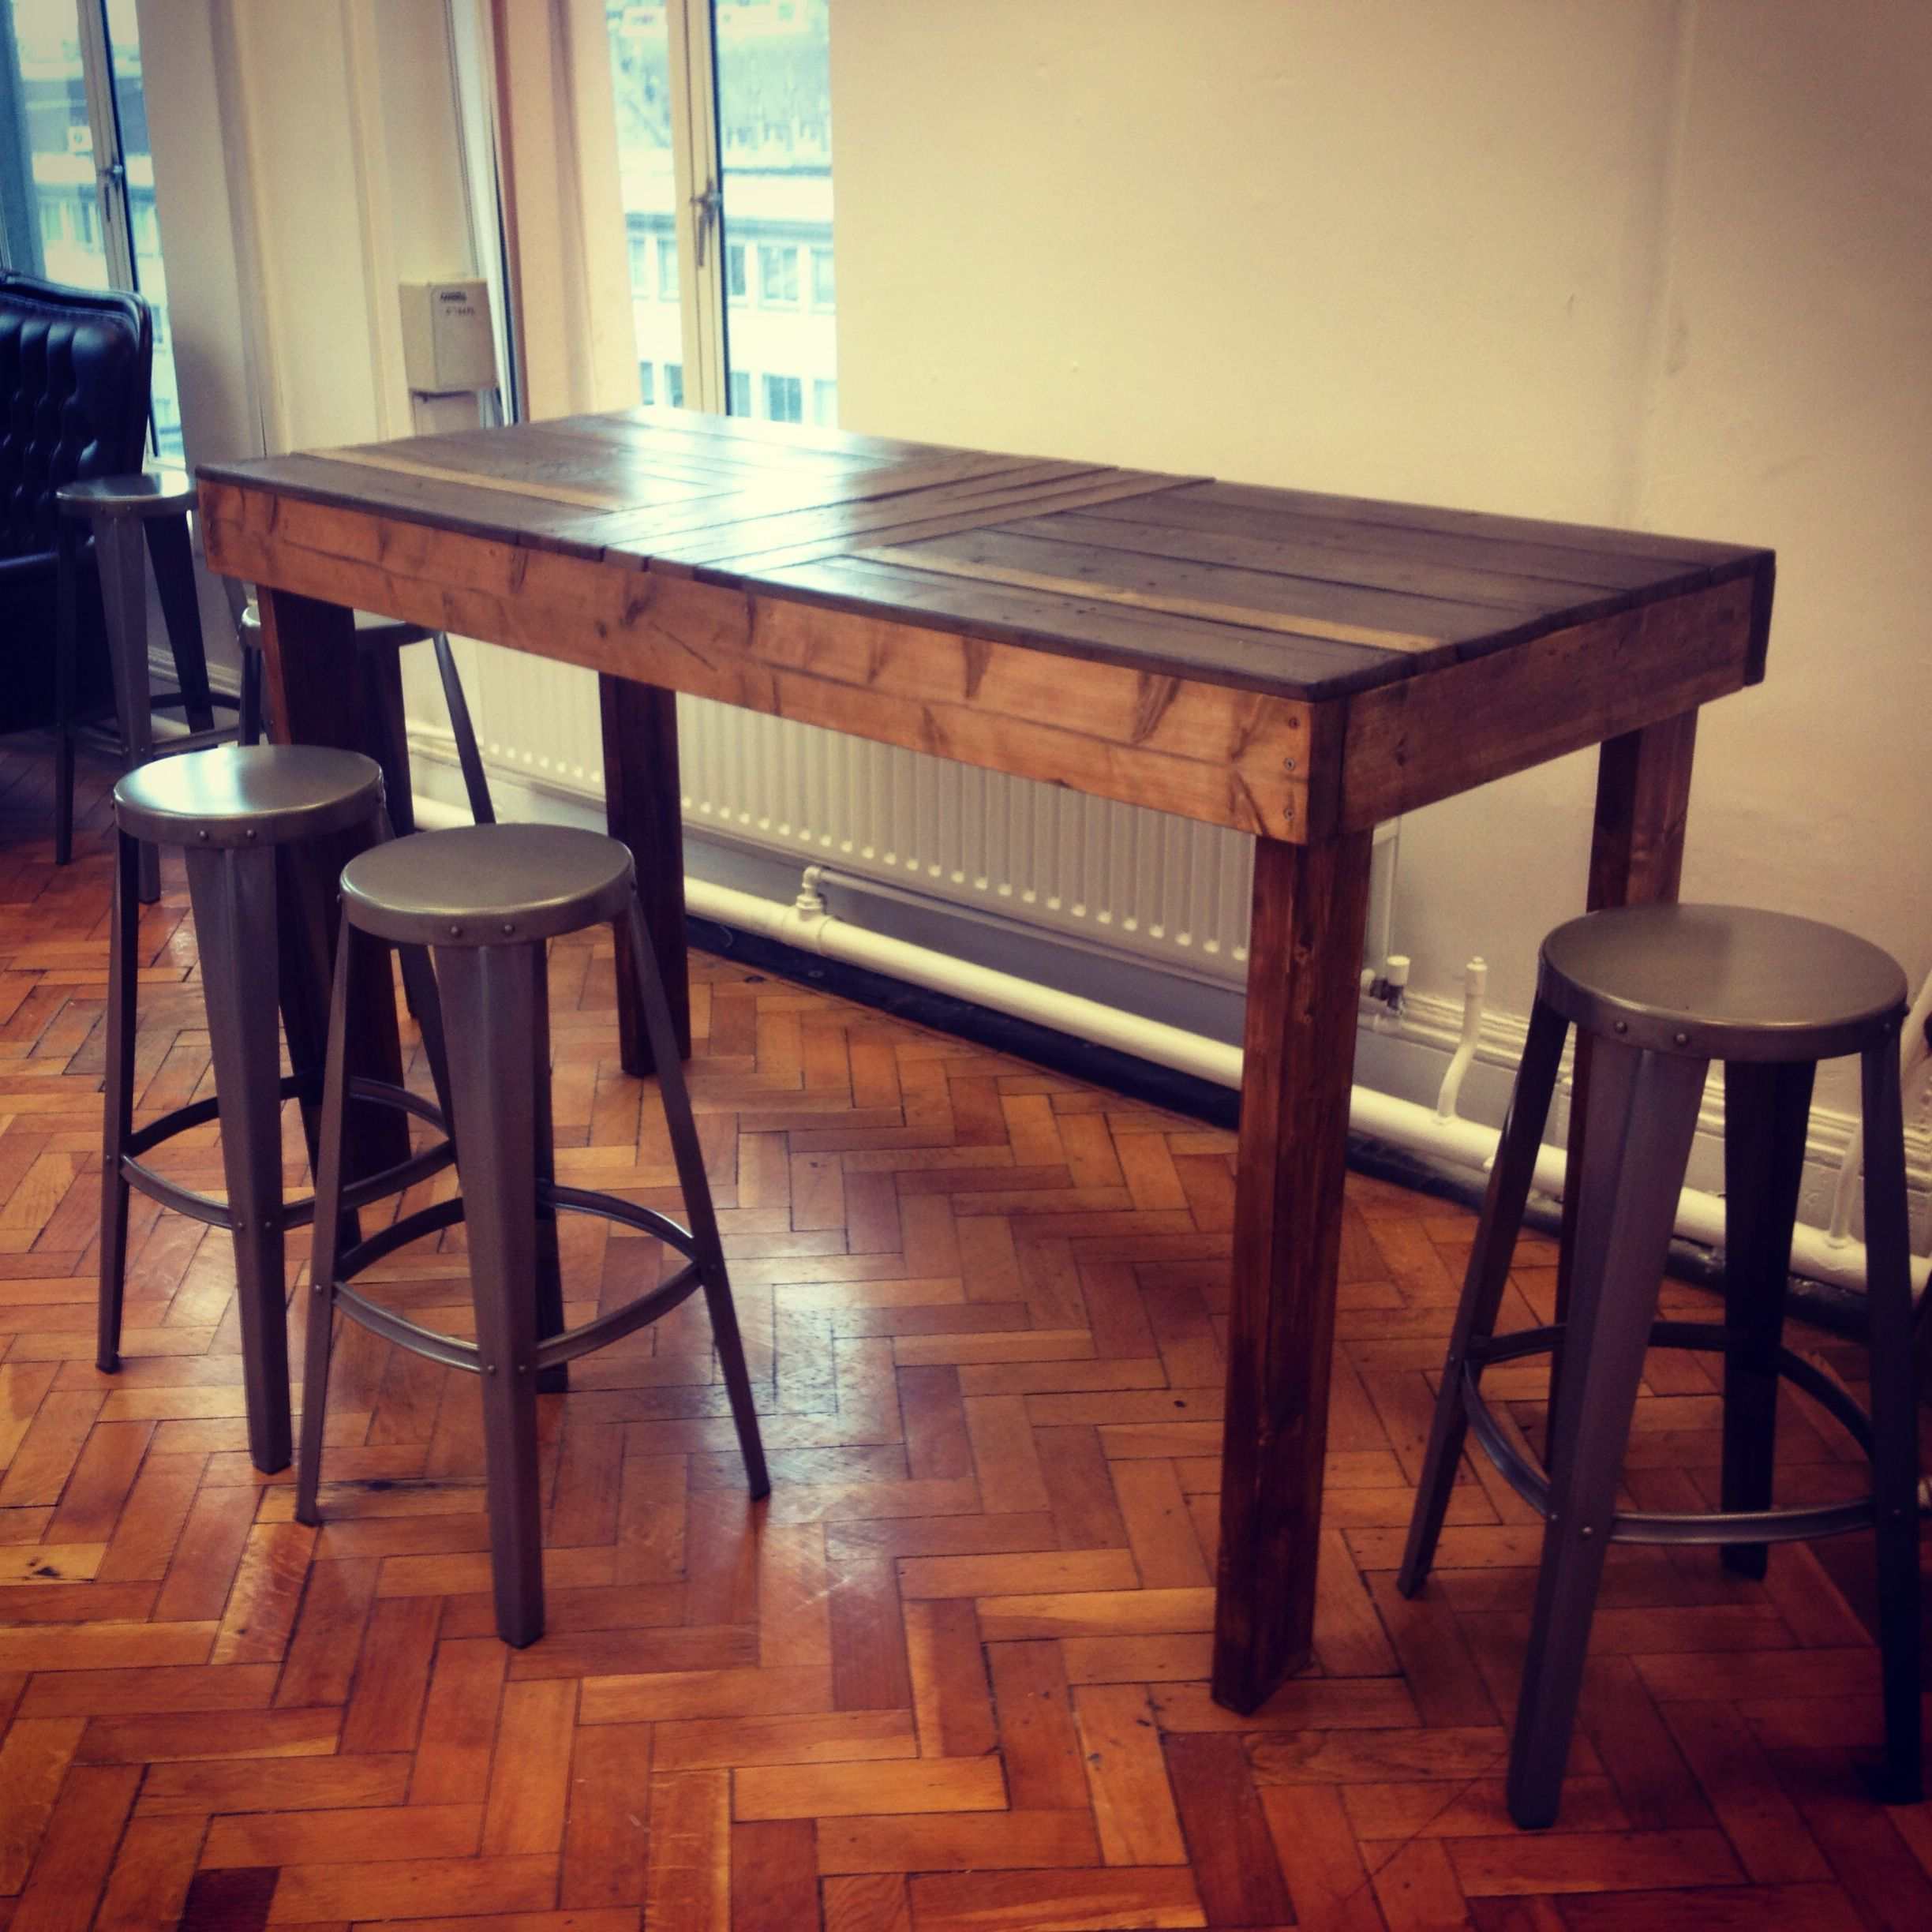 Tall Table I Made From Pallets Visit Us At Www